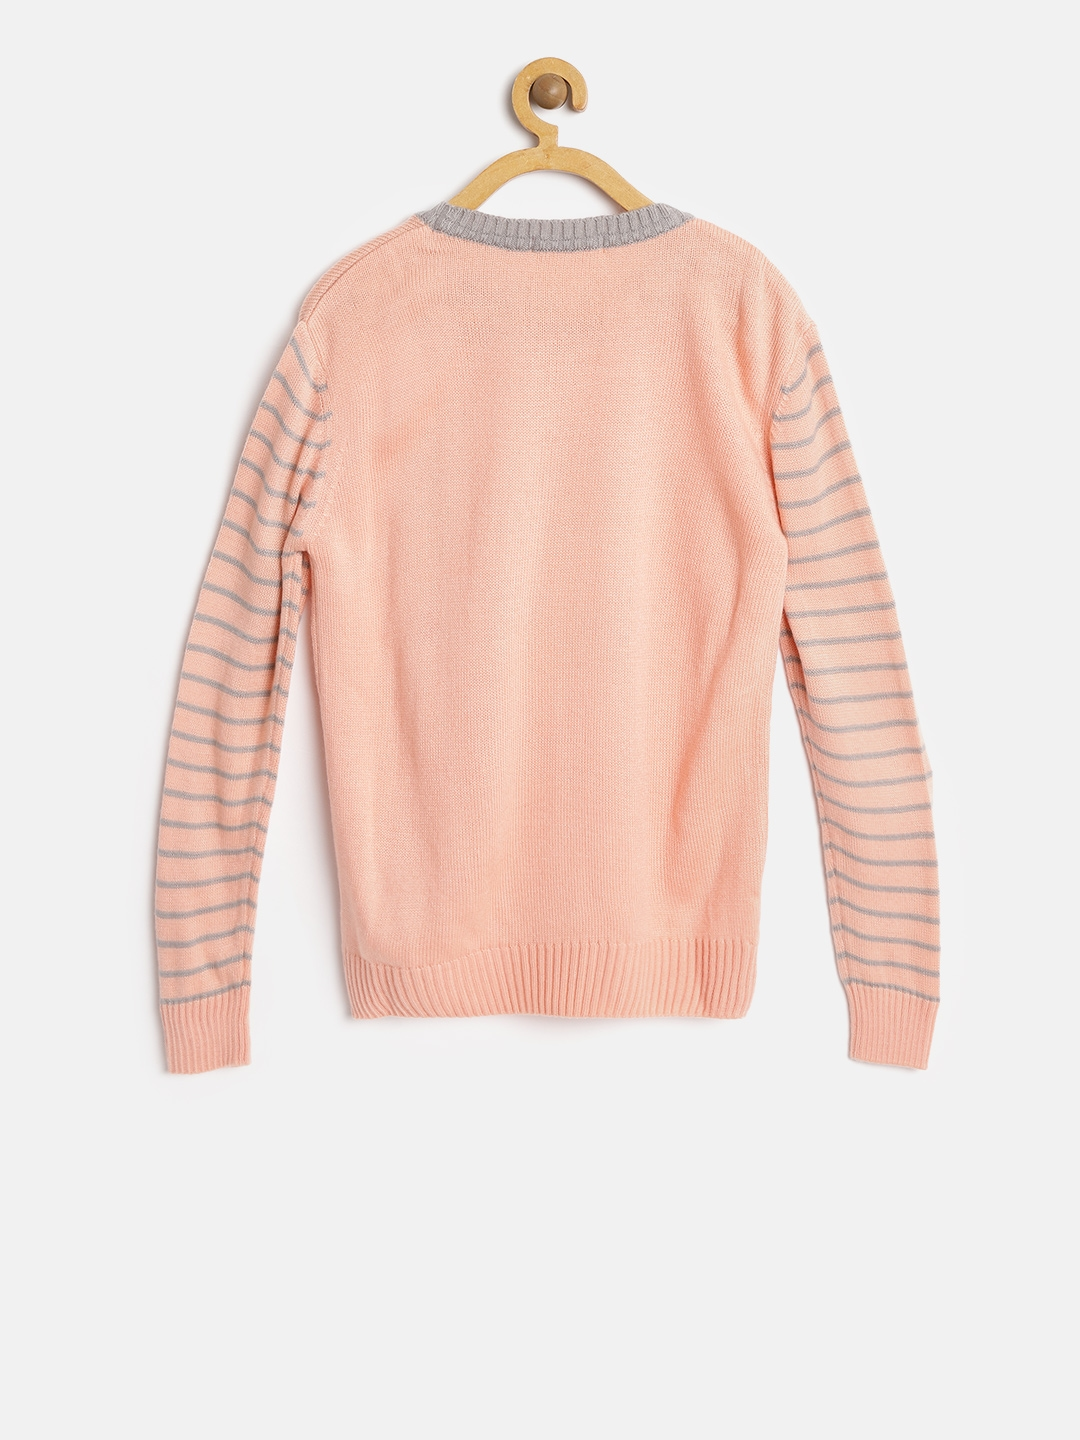 f9f7bdaddc0b Buy Wingsfield Girls Peach Coloured Printed Sweater - Sweaters for ...